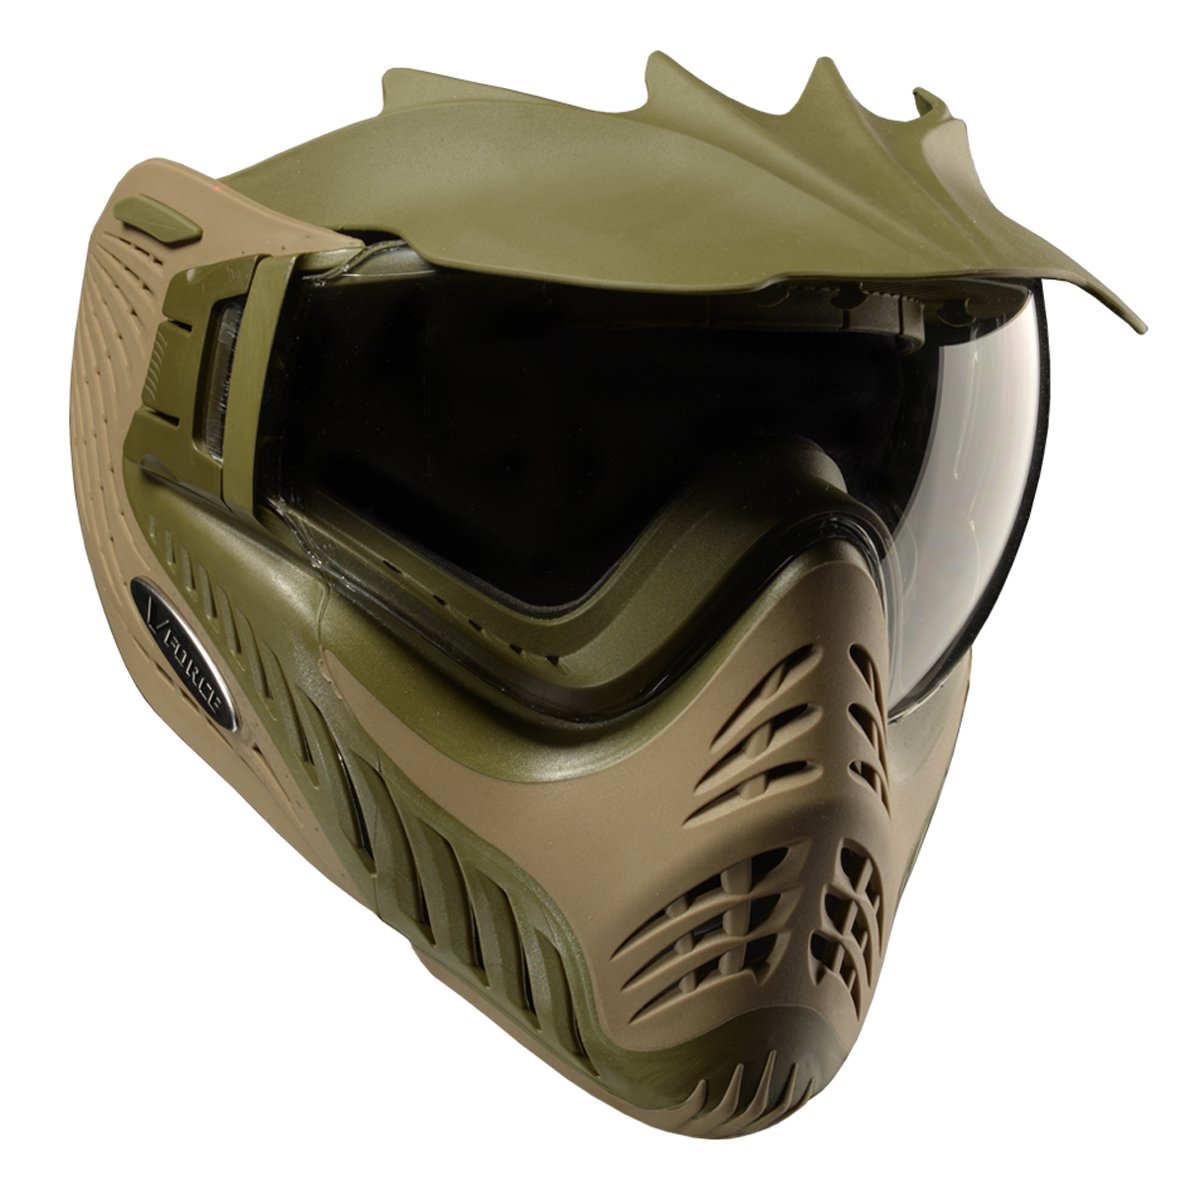 VForceプロファイラThermal Paintball Goggleマスク B002XF05LY Dual Olive Drab/Tan Dual Olive Drab/Tan